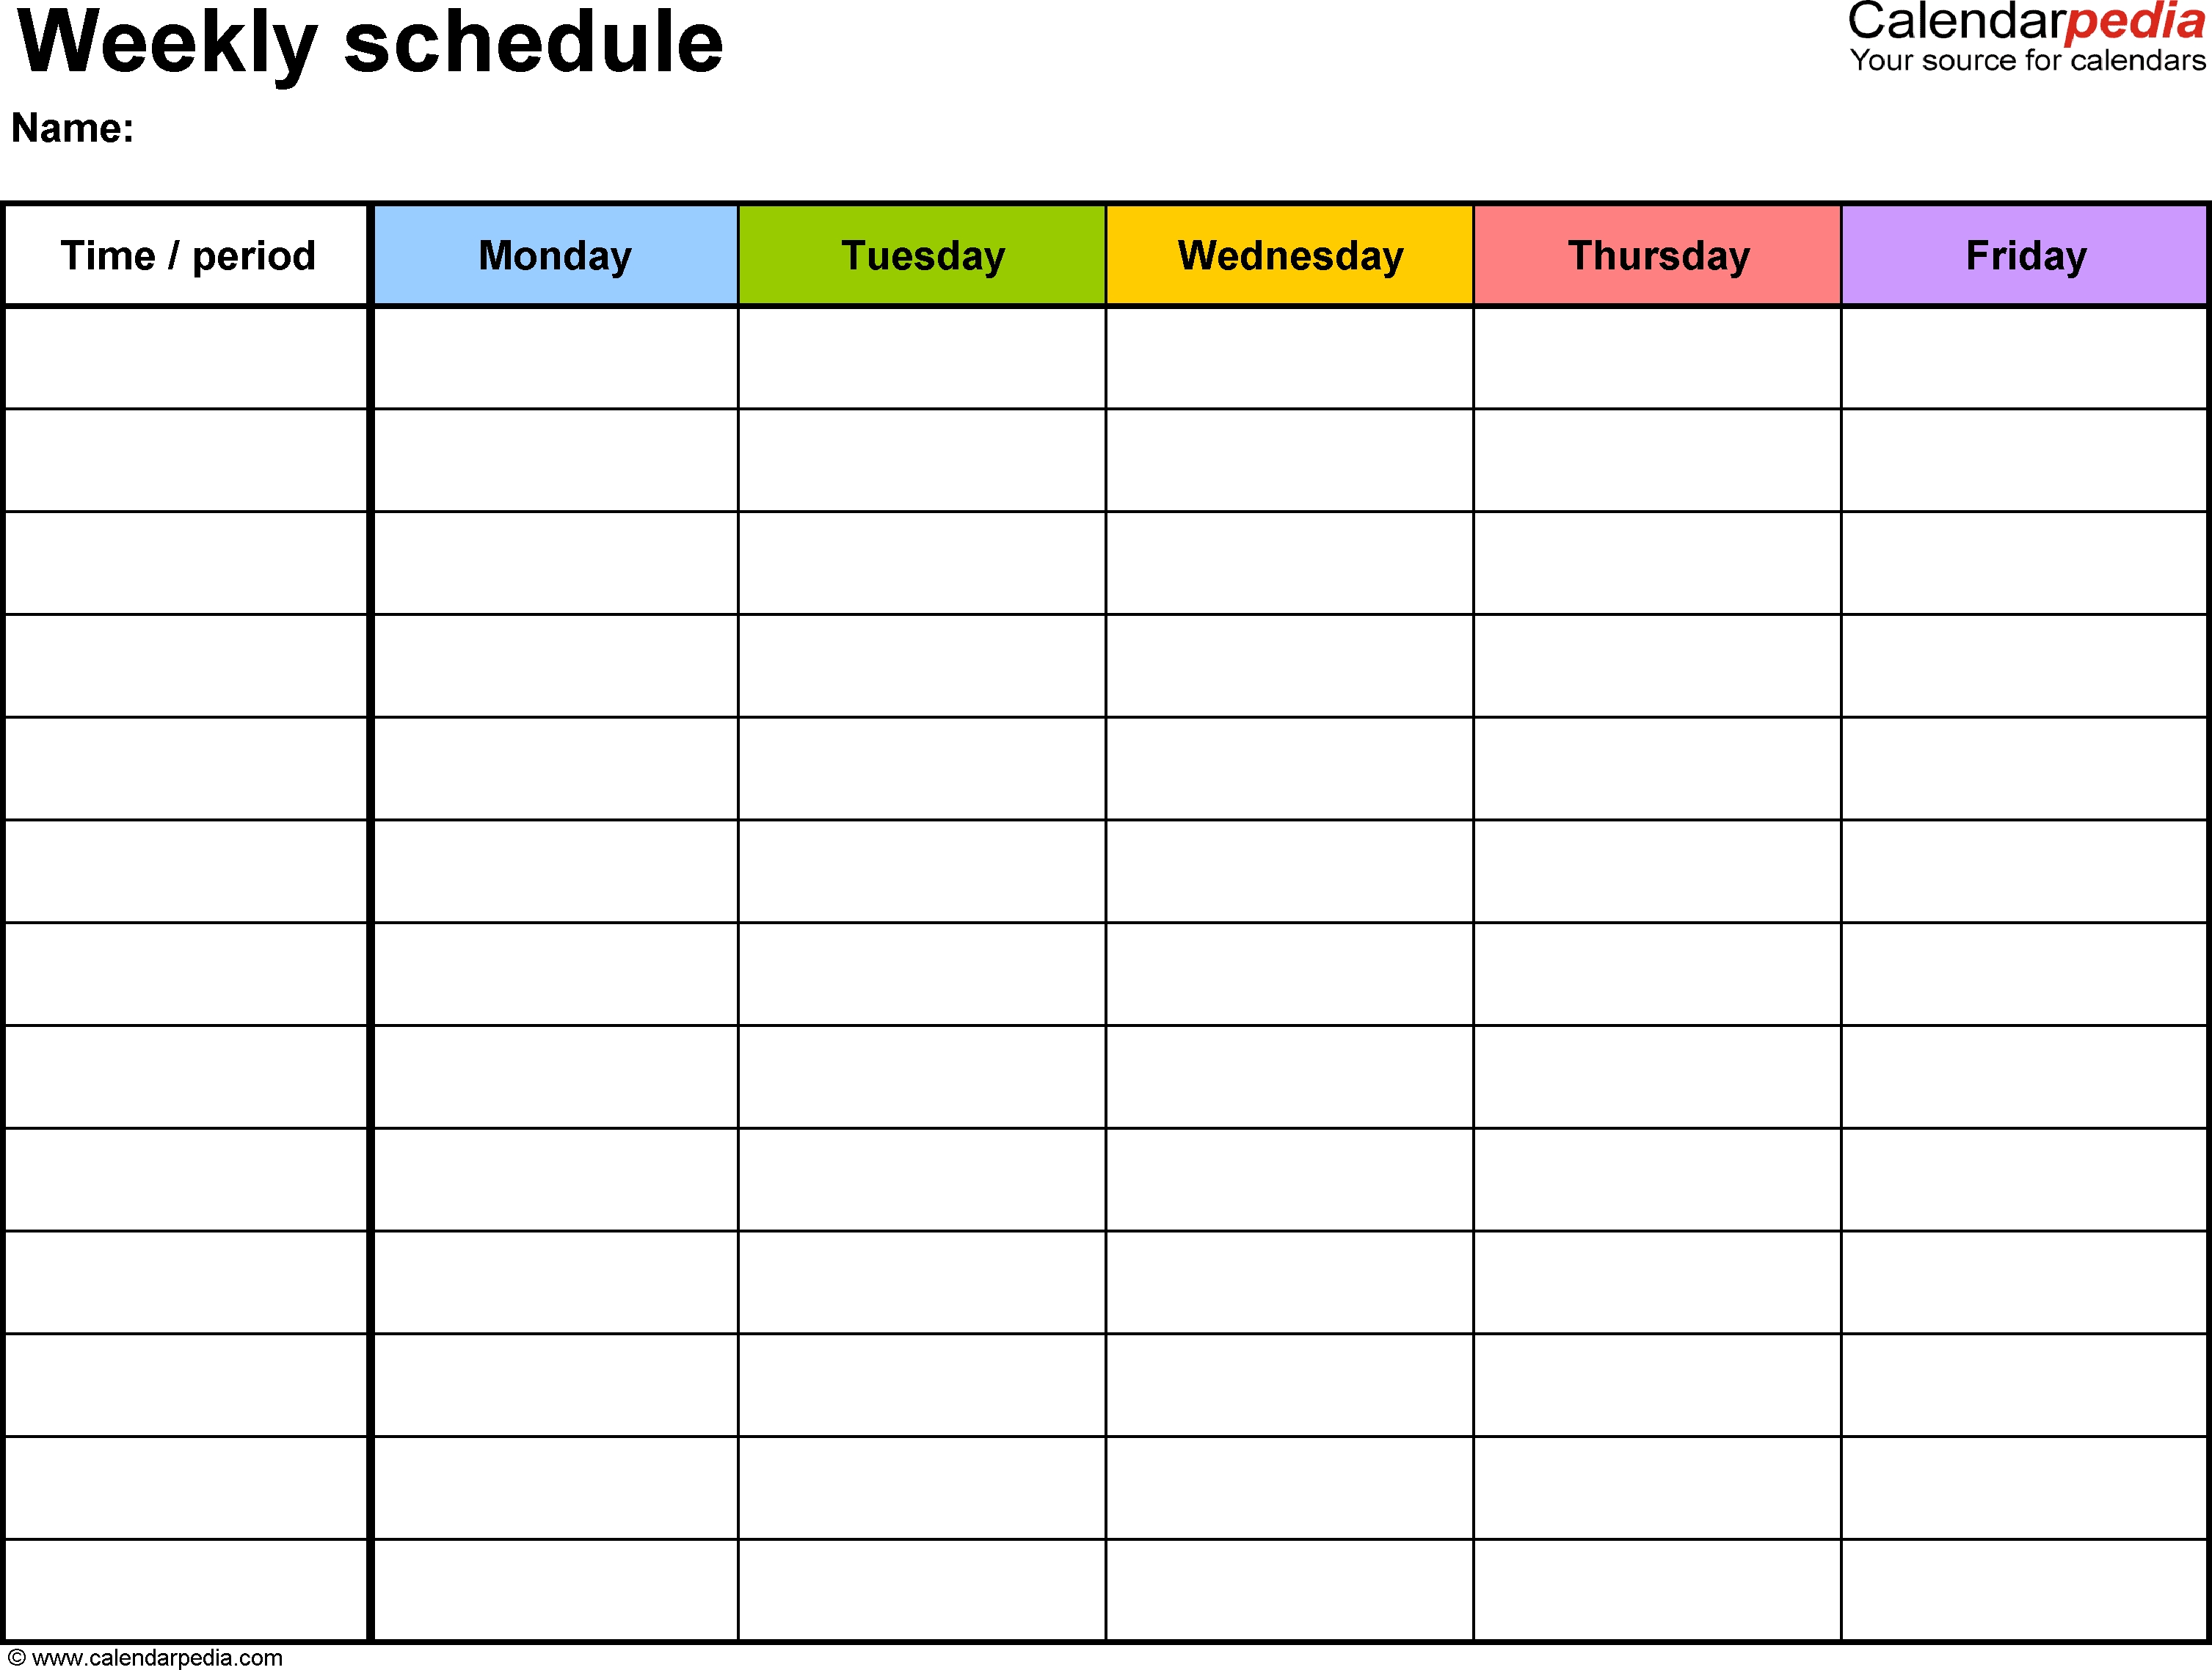 Free Weekly Schedule Templates For Pdf - 18 Templates inside Weekly Planner Template For Students